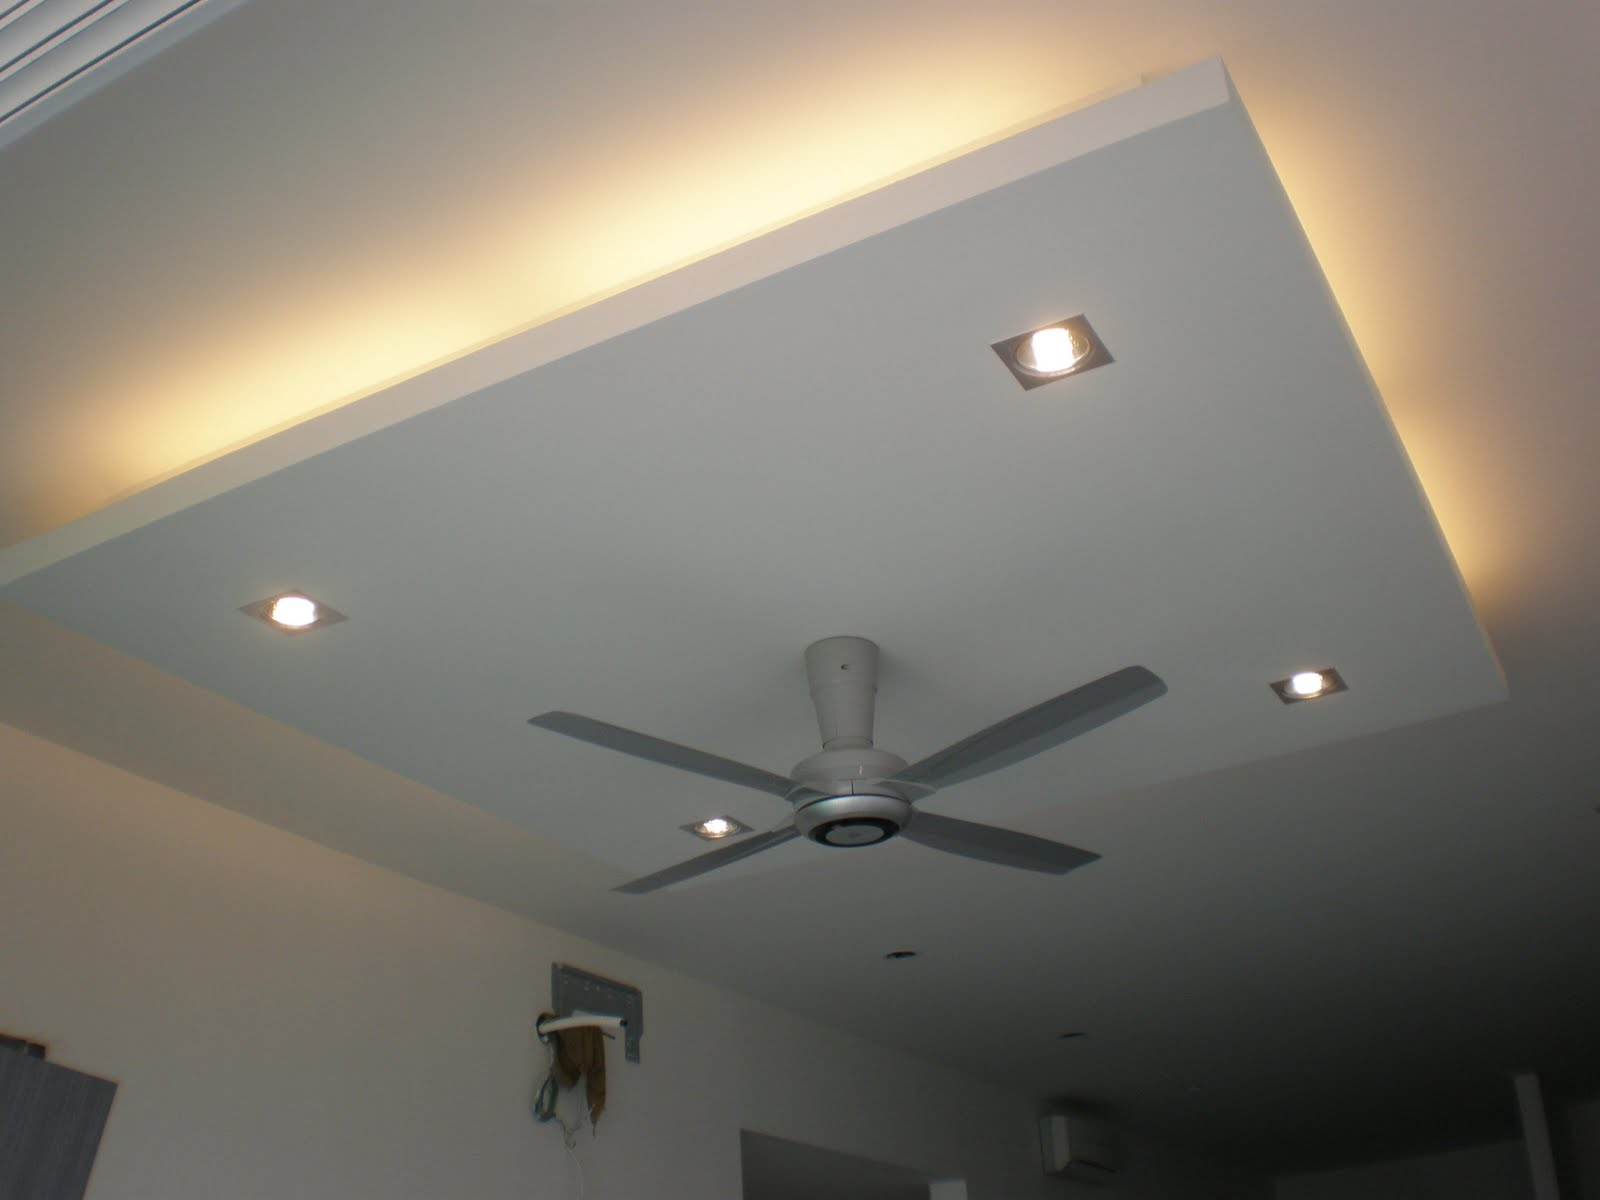 10 Facts About Plaster Ceiling Light